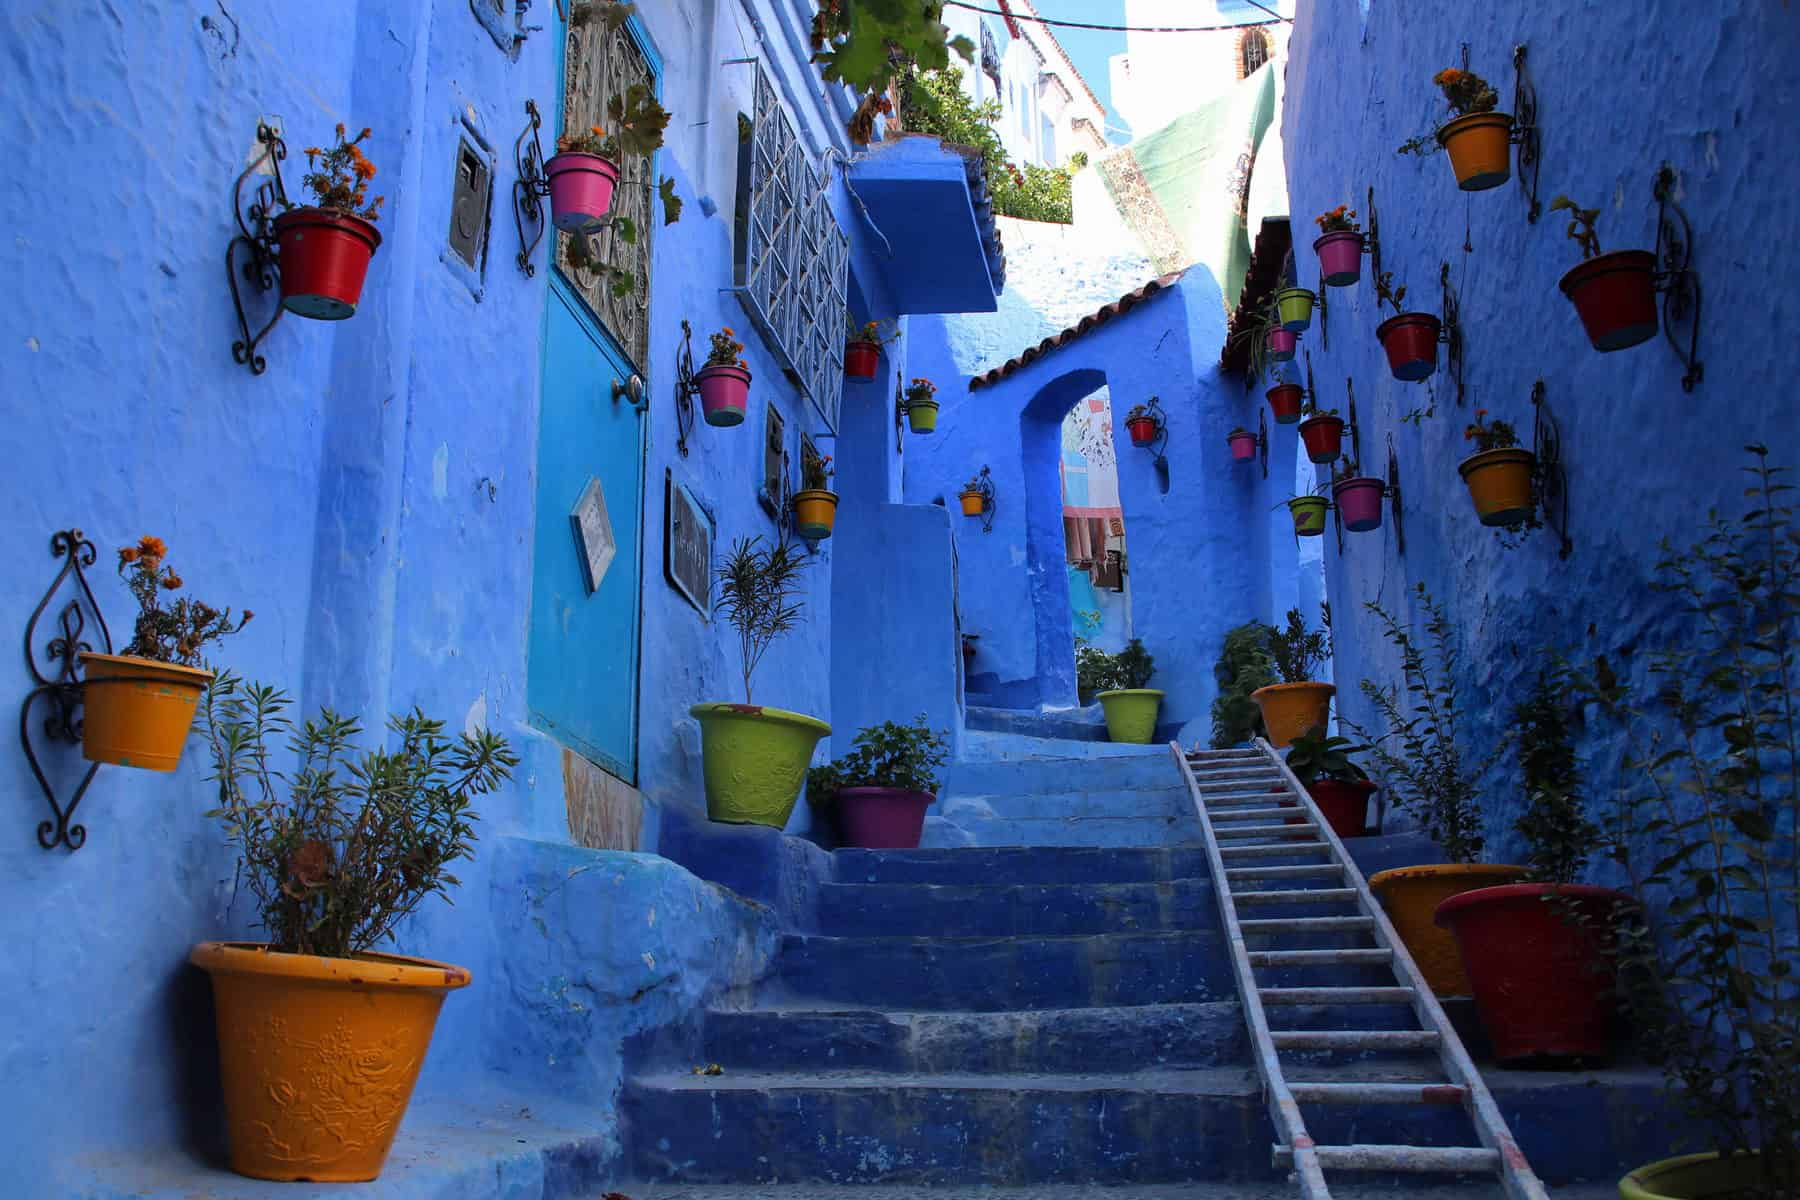 Most Colorful Cities In The World Placeaholic - Old town morocco entirely blue